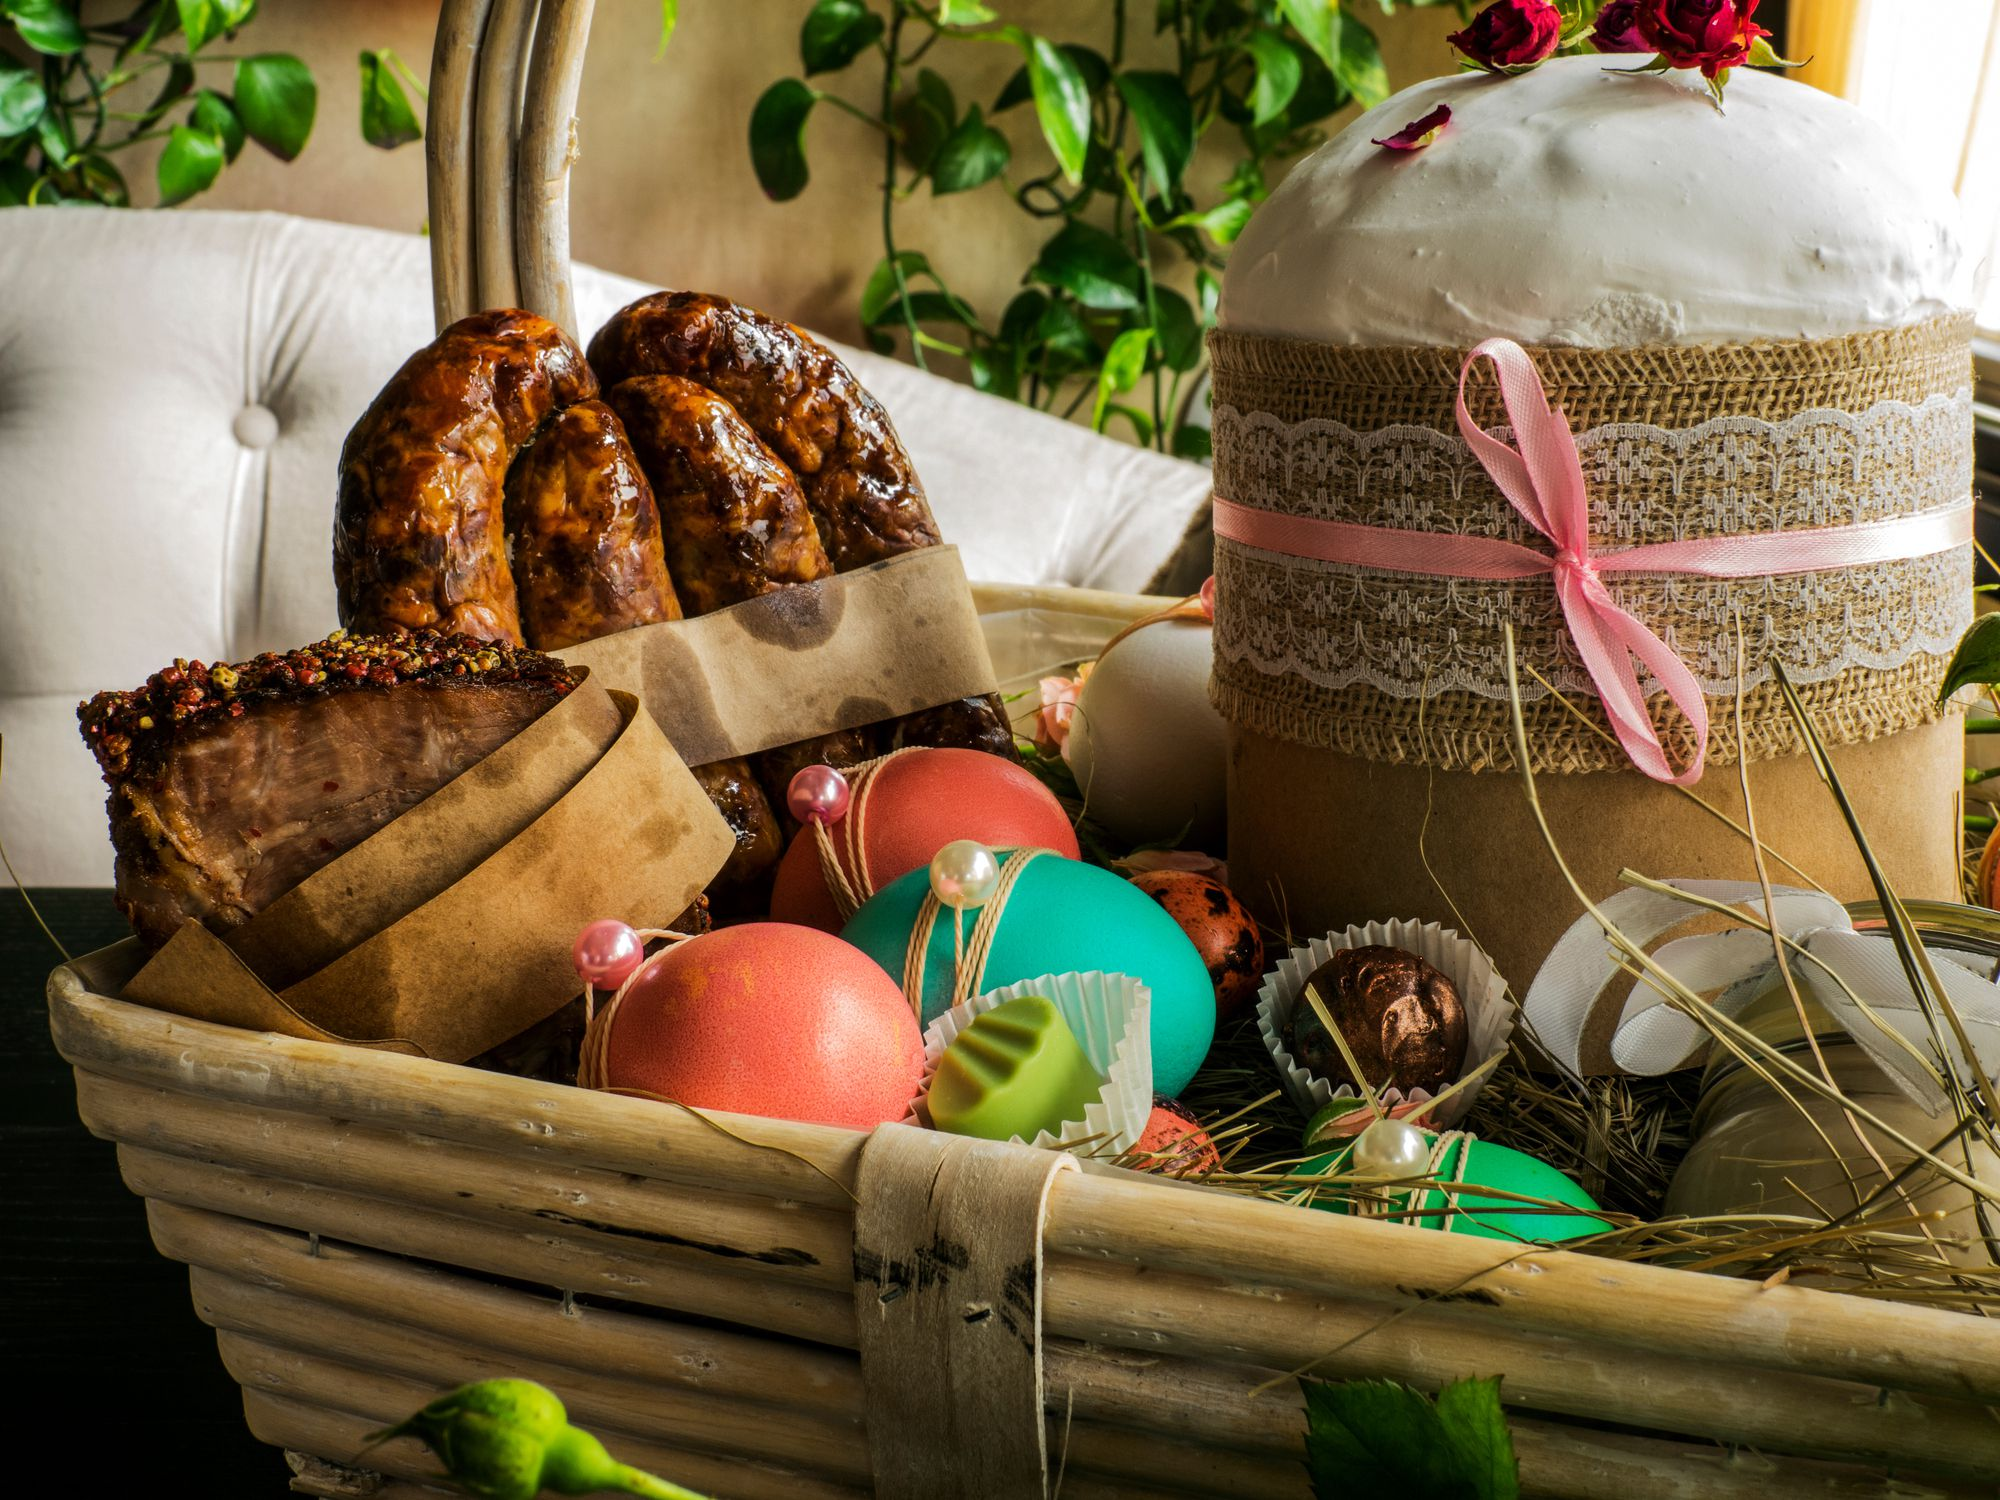 decorative baskets dried flowers small baskets country basket.htm traditional slovak ukrainian russian easter basket food  slovak ukrainian russian easter basket